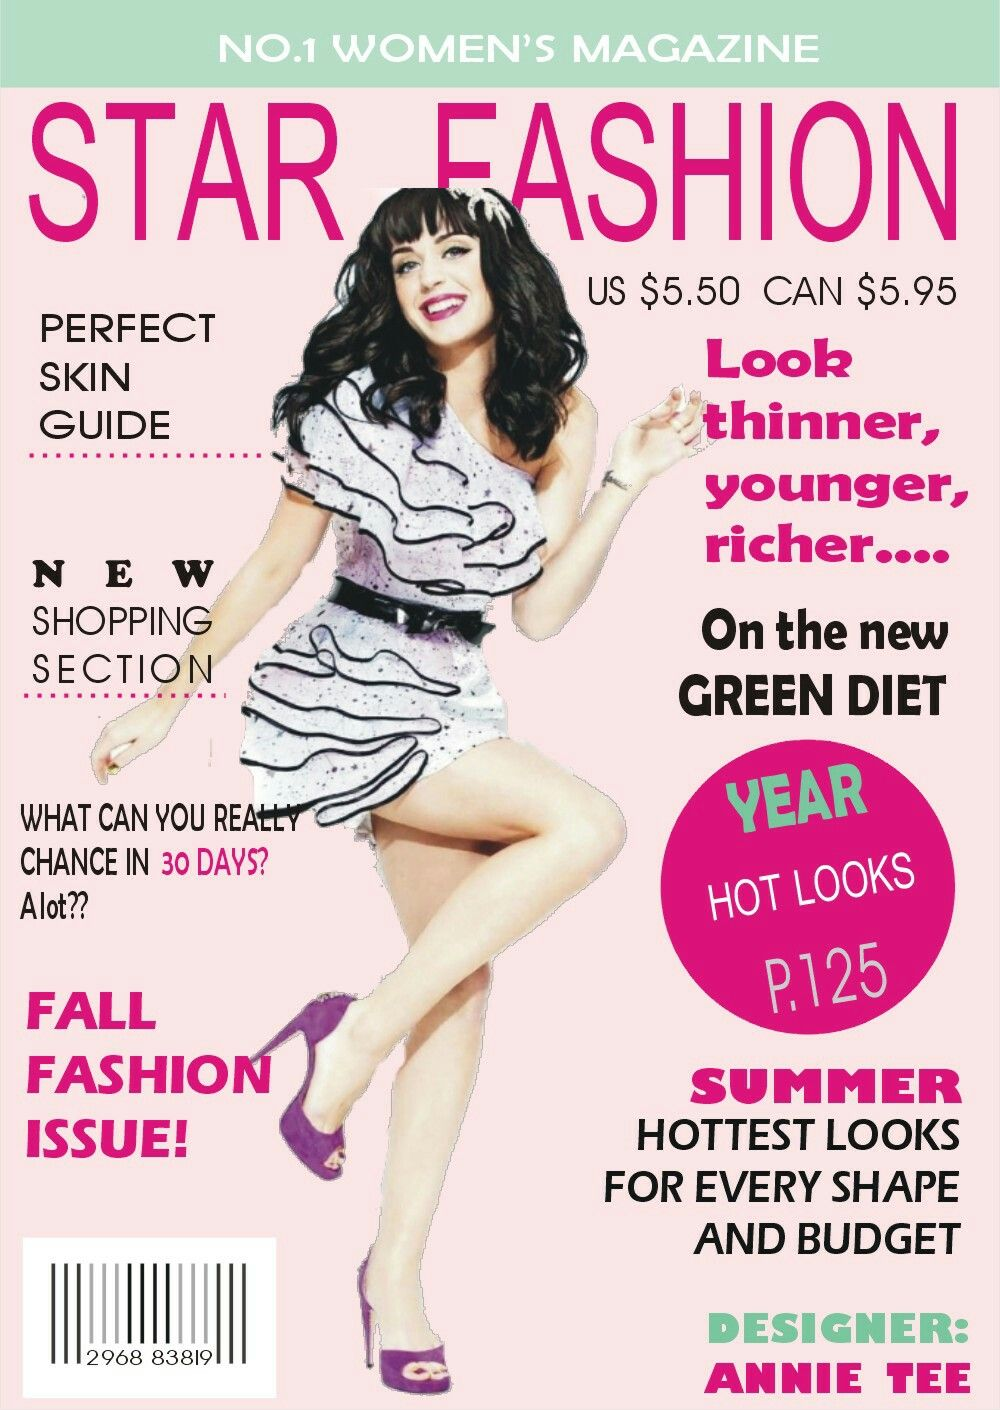 Star Fashion Magazine Cover Page Designed By Annie Tee Designs Magazine Cover Design Magazine Cover Magazine Cover Page